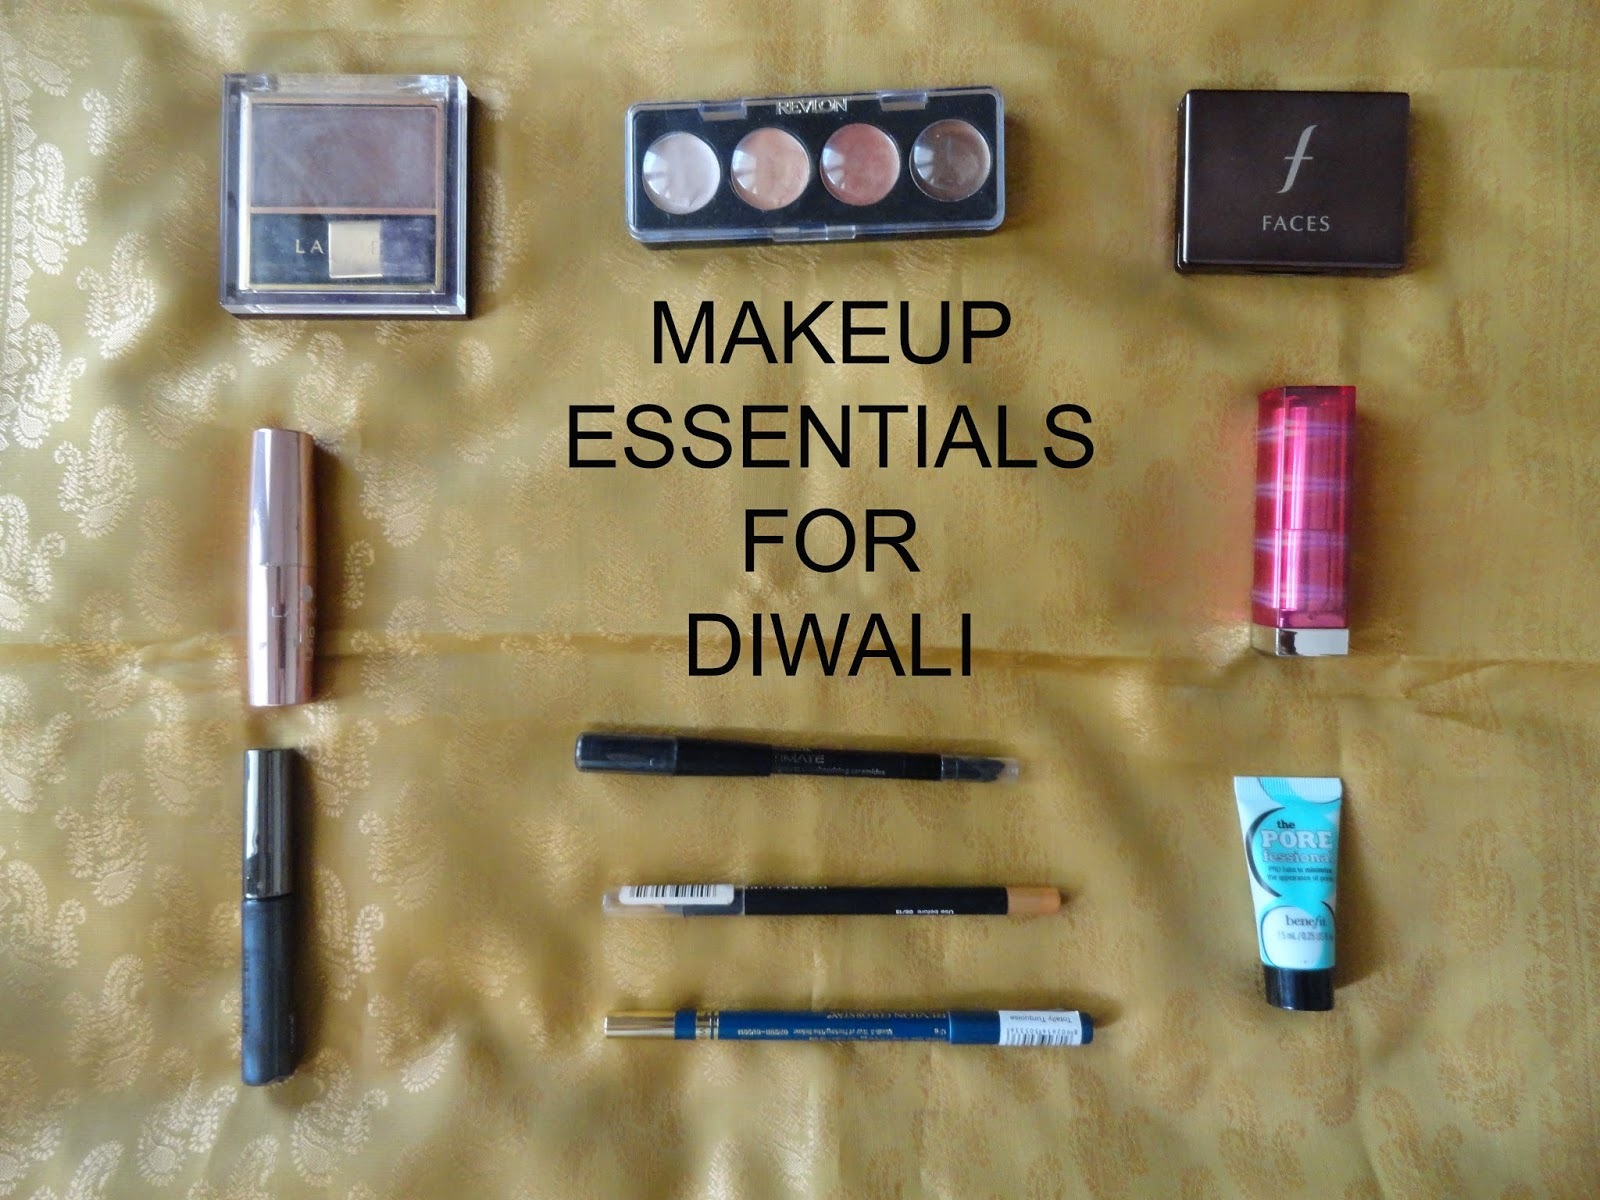 Makeup Essentials for the Festive Season image